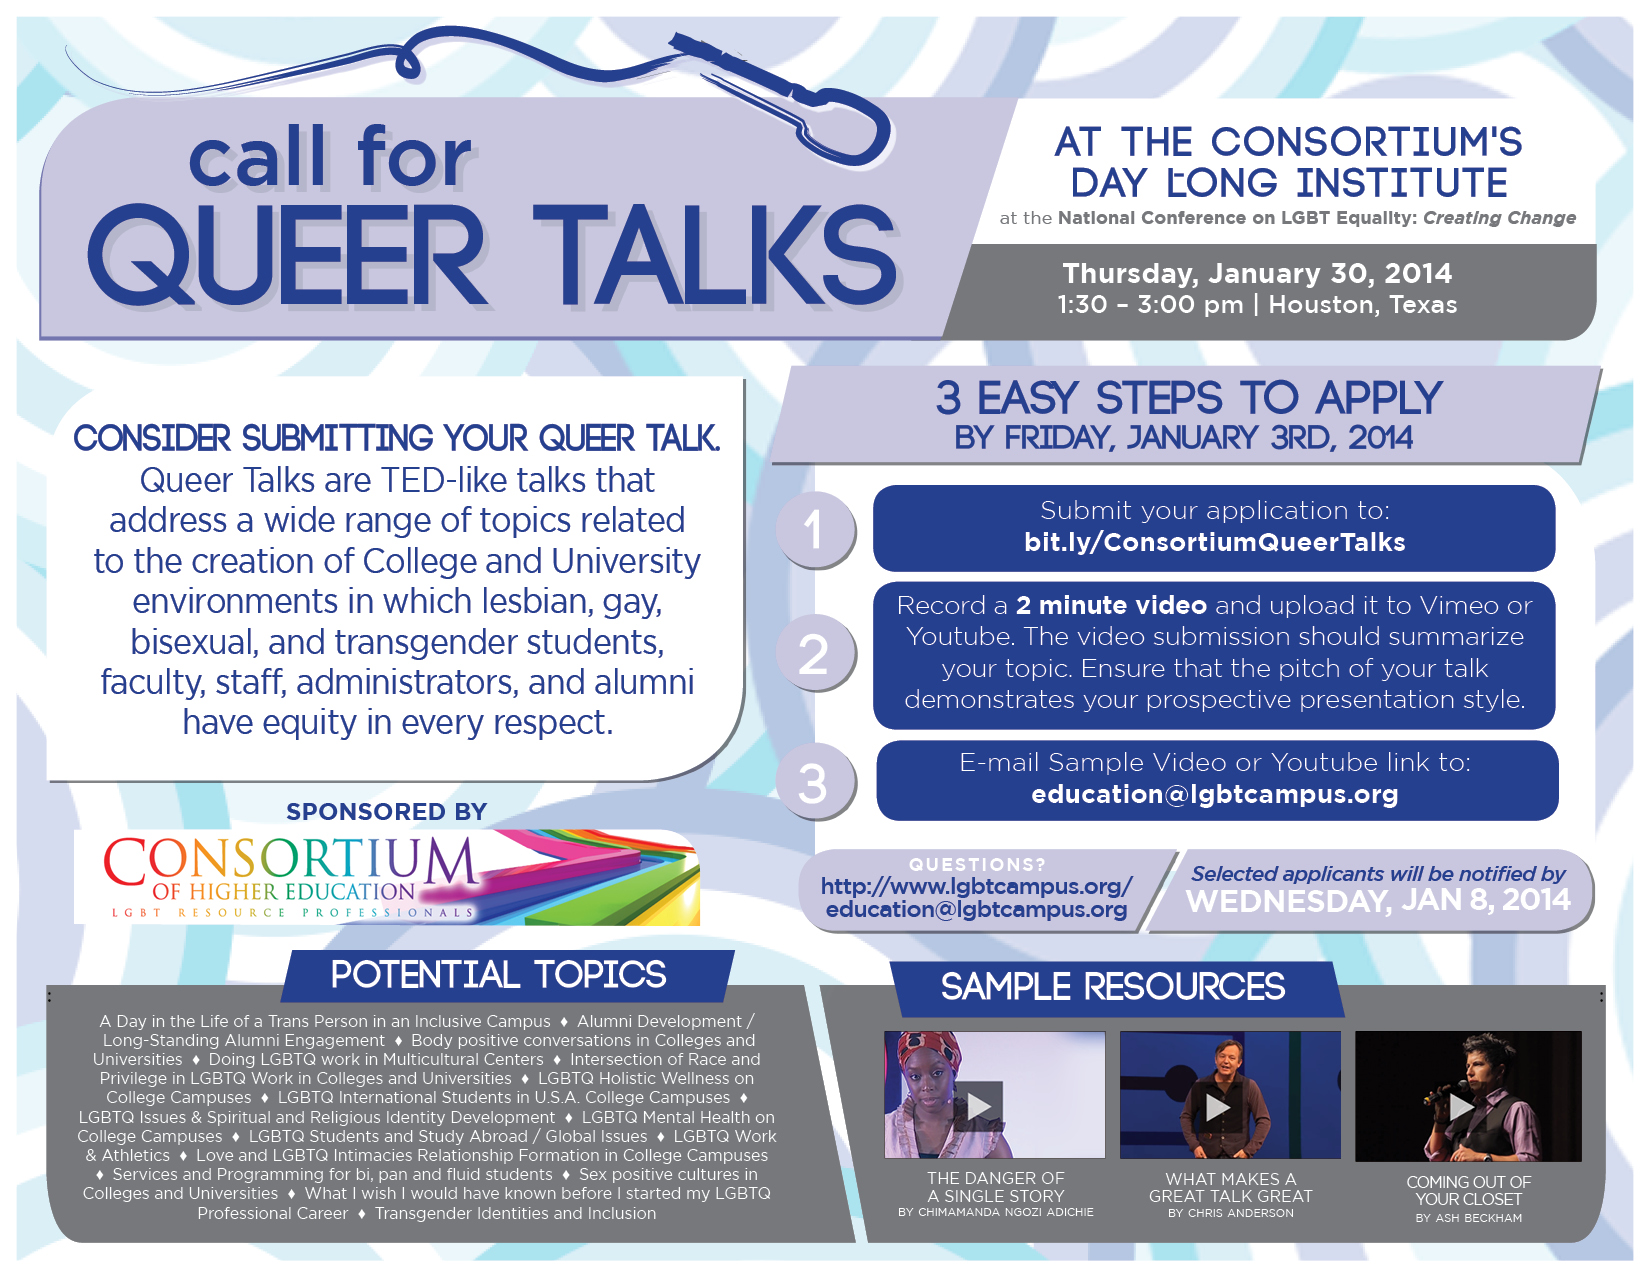 Consortium Queer Talks Call for Submissions Image